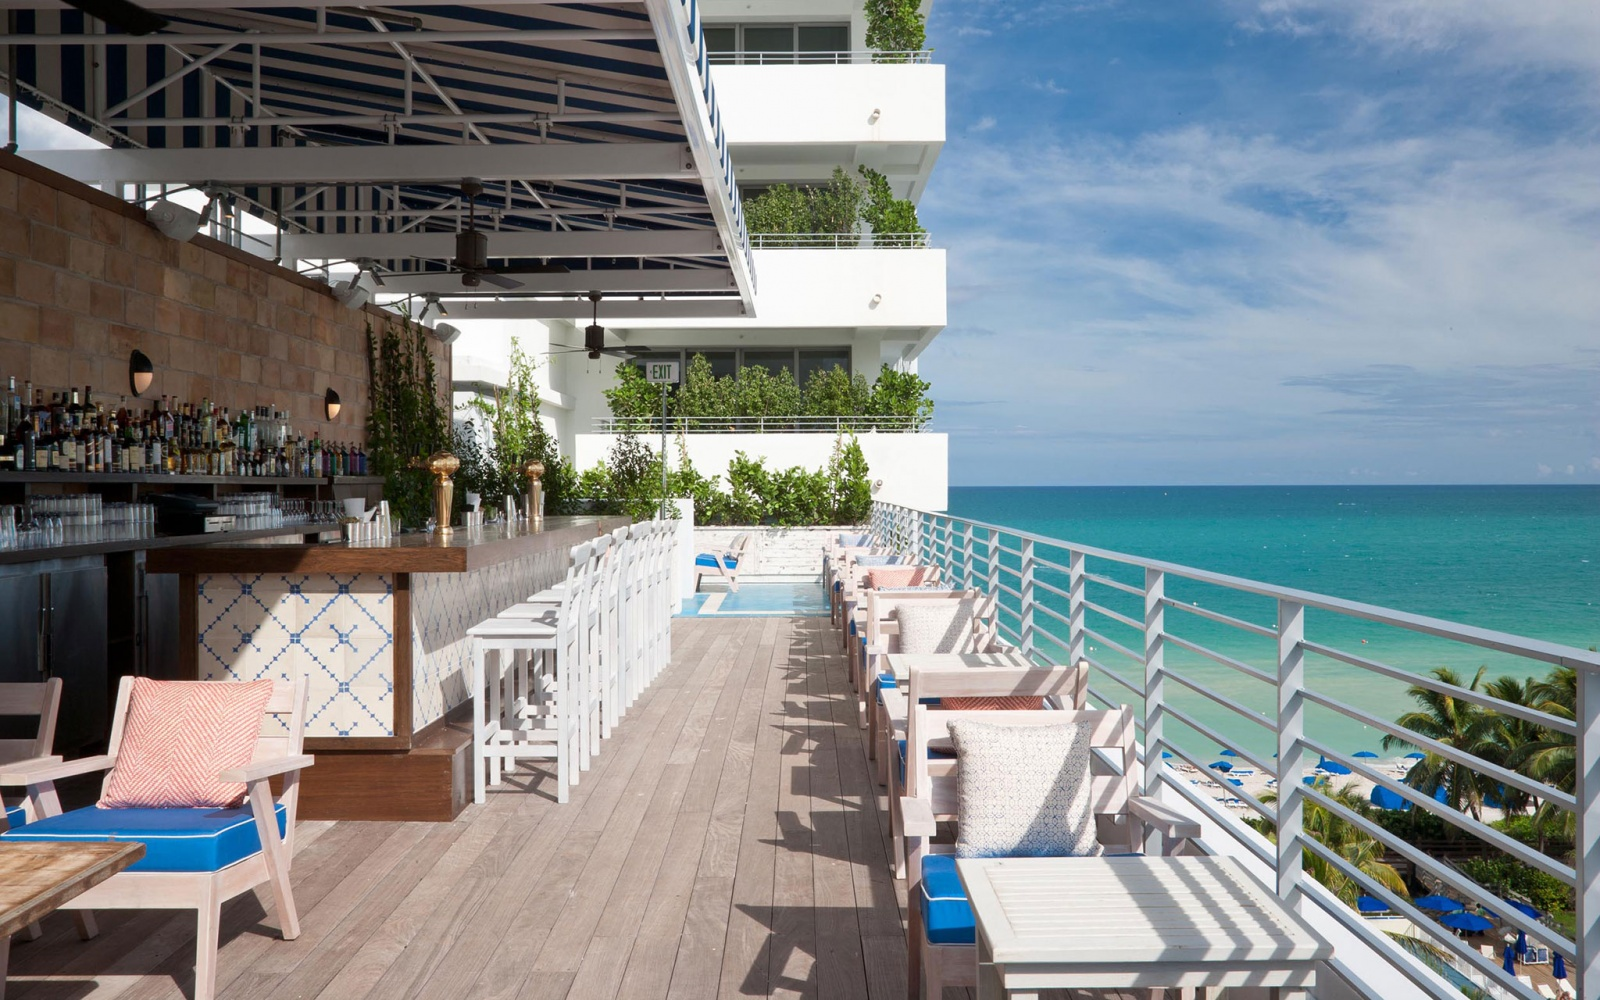 Soho Beach House Miami